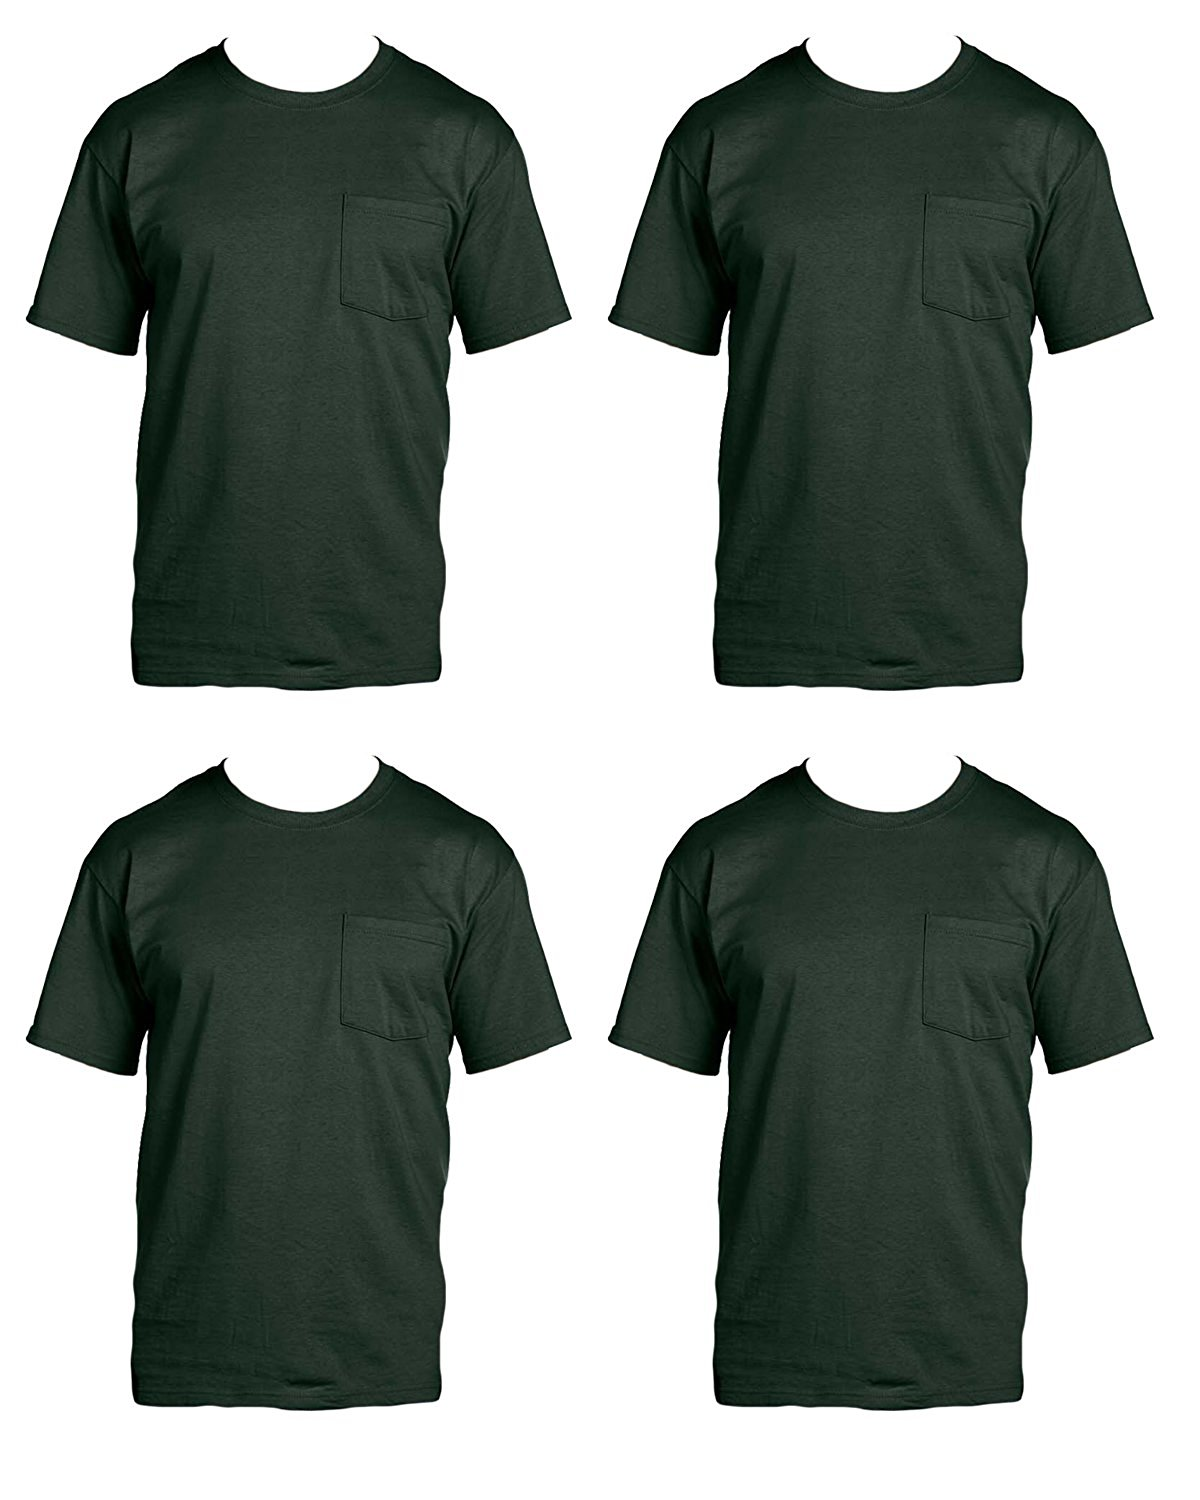 e72b10a2cc51 Get Quotations · Fruit of the Loom Men s 4-Pack Pocket Crew Neck T-Shirt  Forest Green